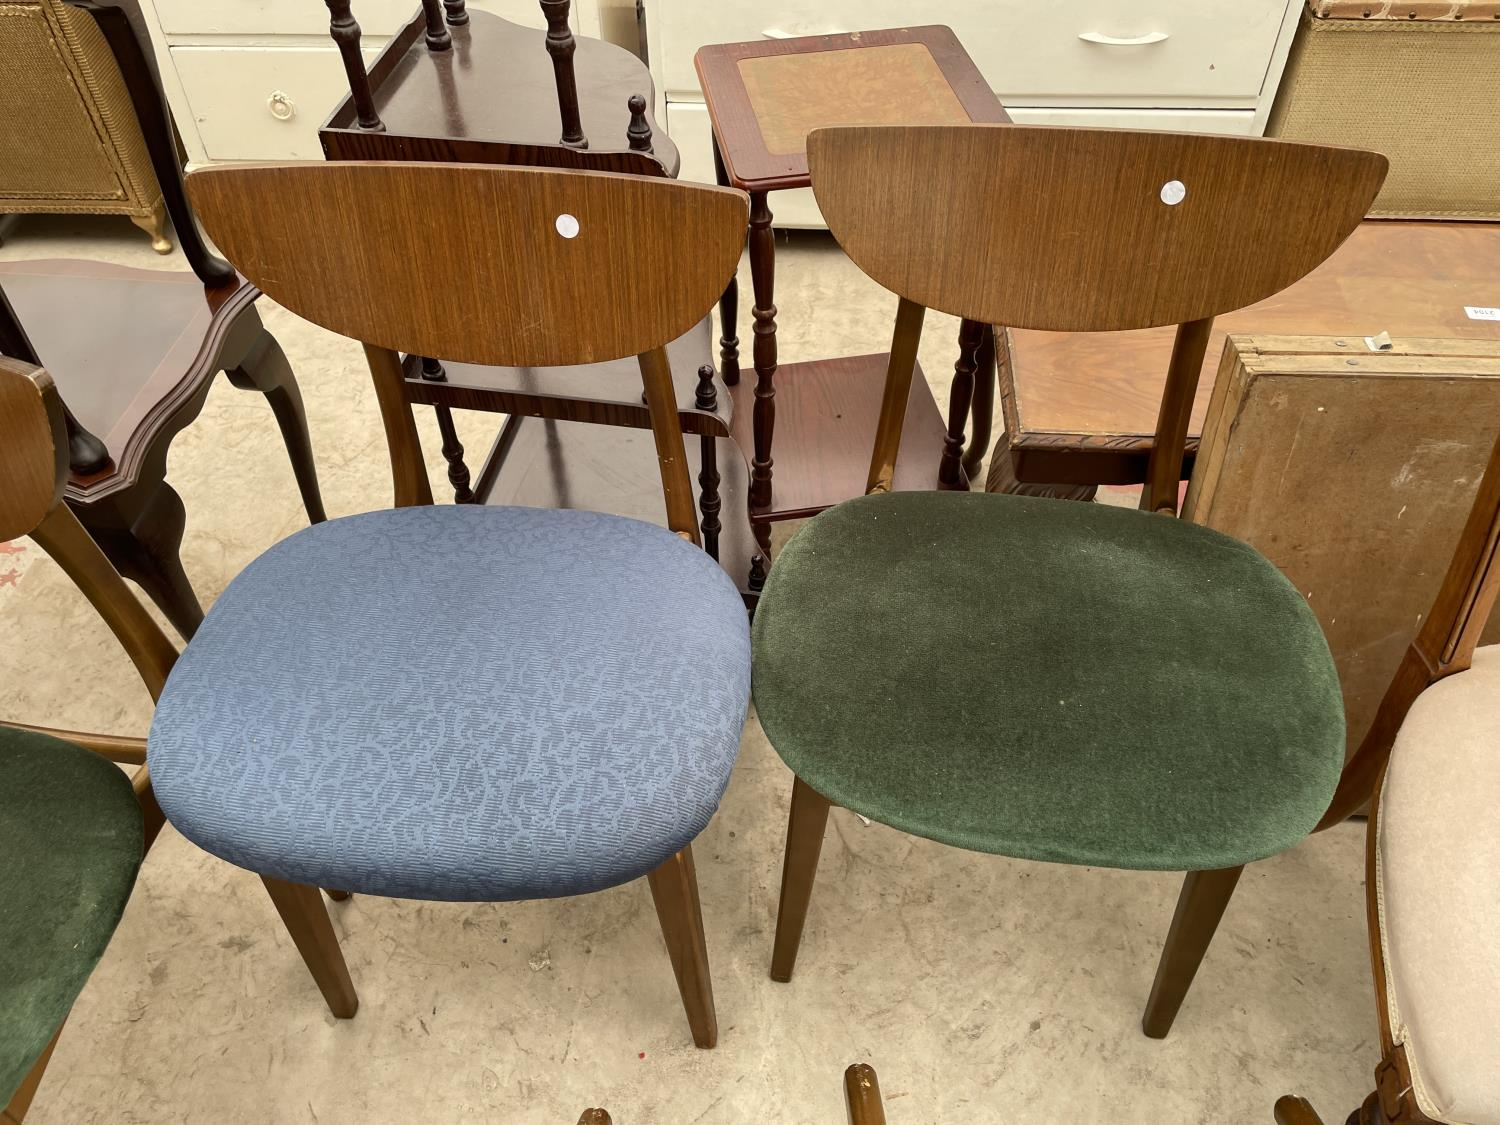 A SET OF FIVE MID 20TH CENTURY STYLE DINING CHAIRS WITH WHALE FIN BACKS - Image 4 of 10